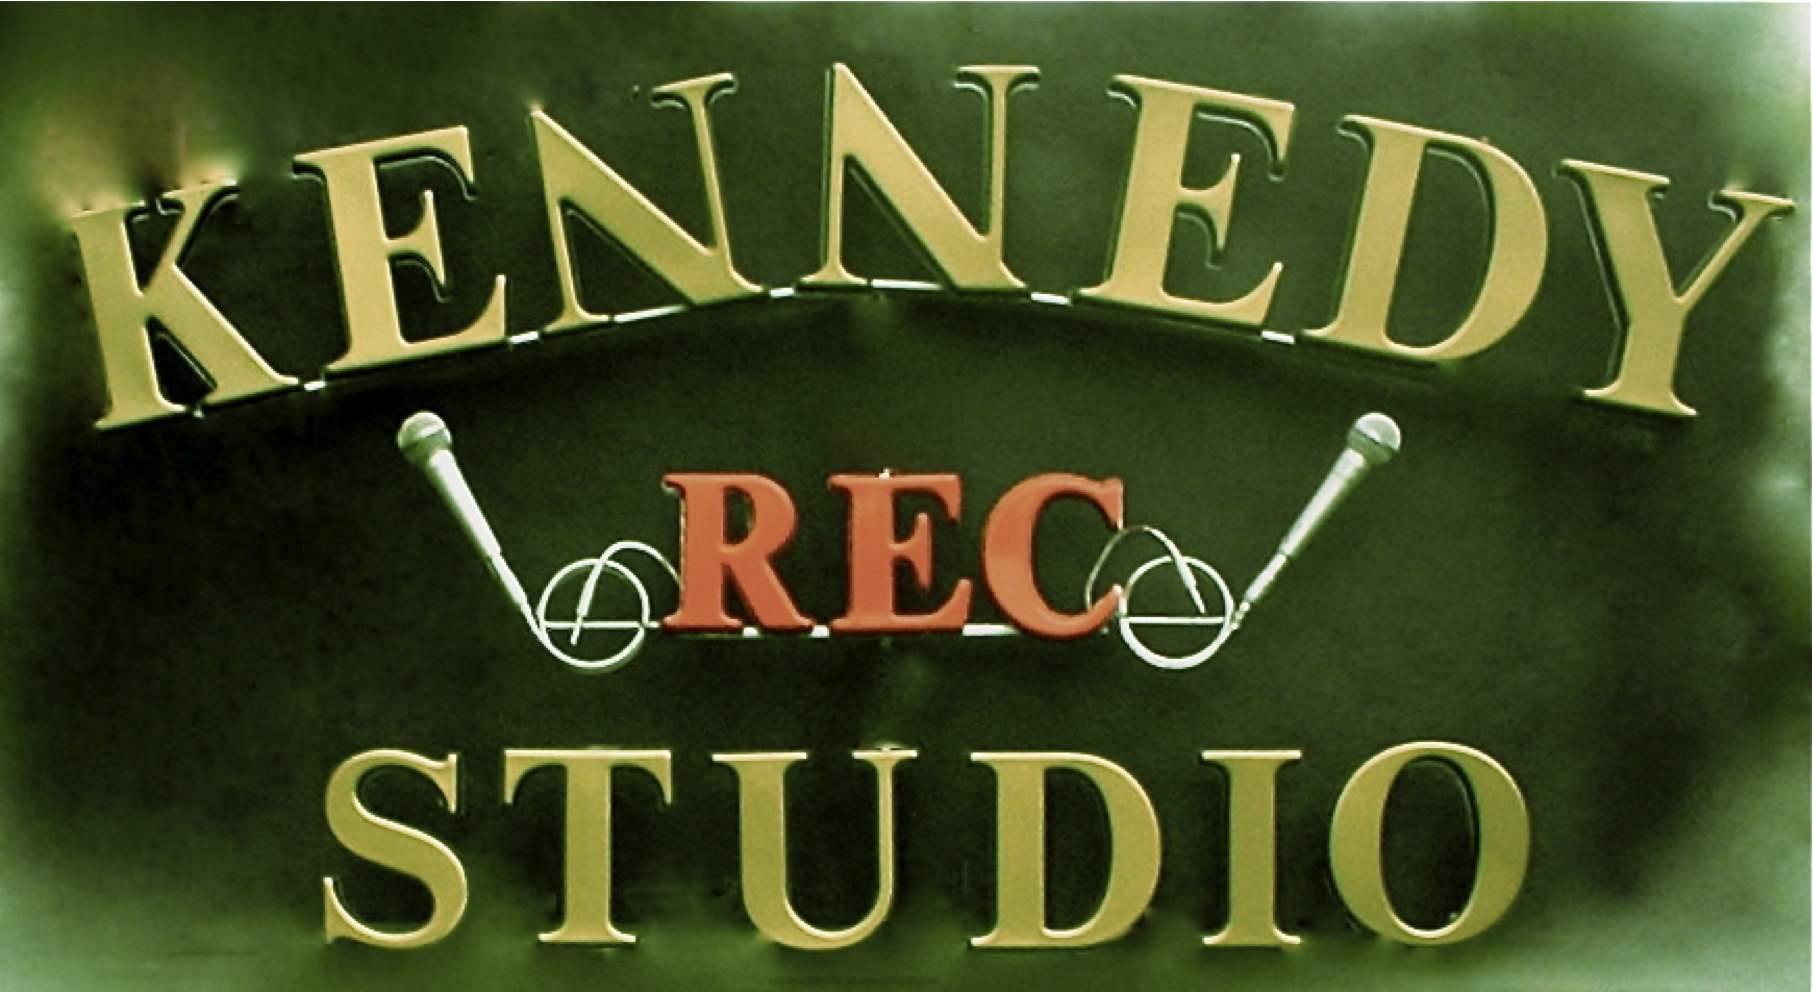 Kennedy recording studio